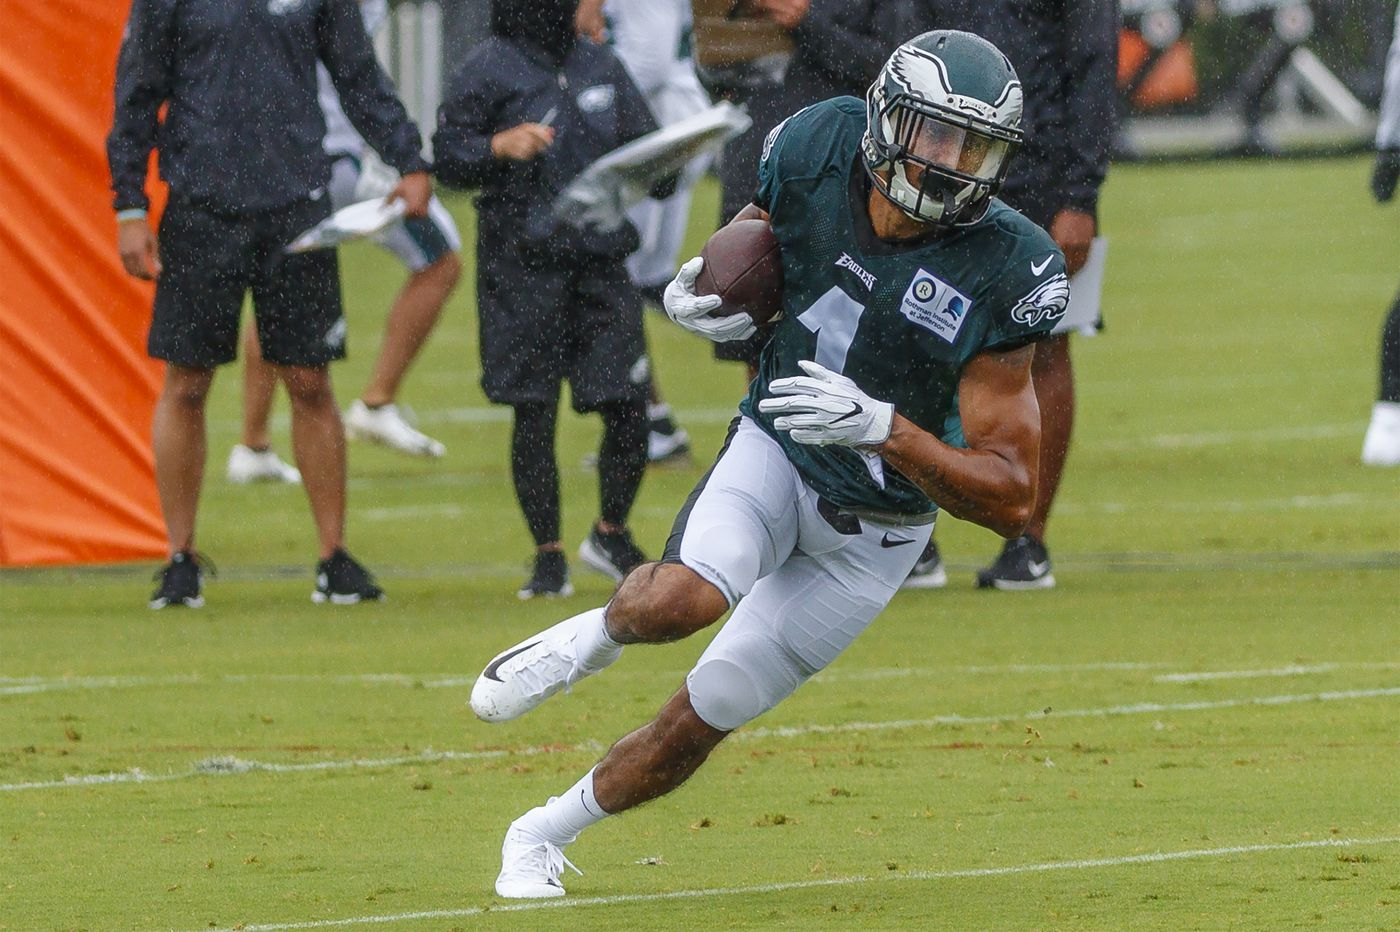 Darius Prince never played college football, but after a successful season in the AFL he's vying for an Eagles roster spot